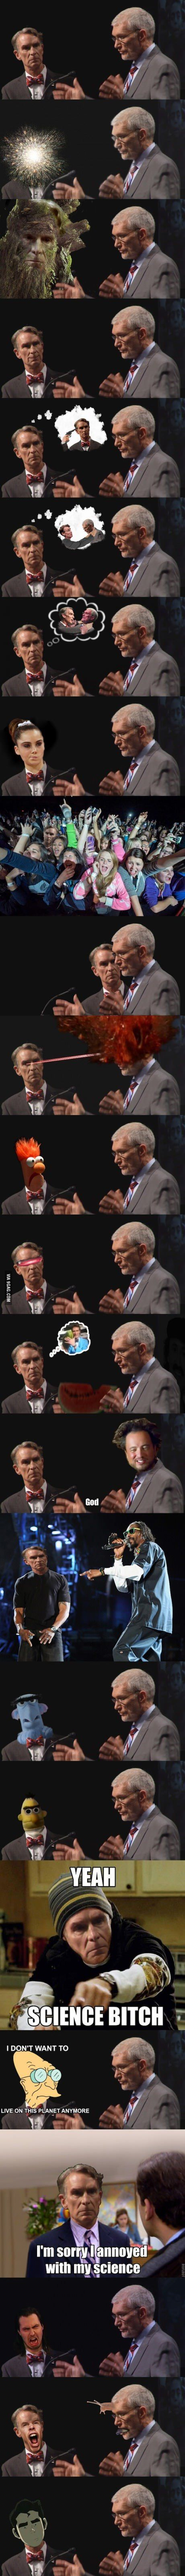 The many iterations of Bill Nye